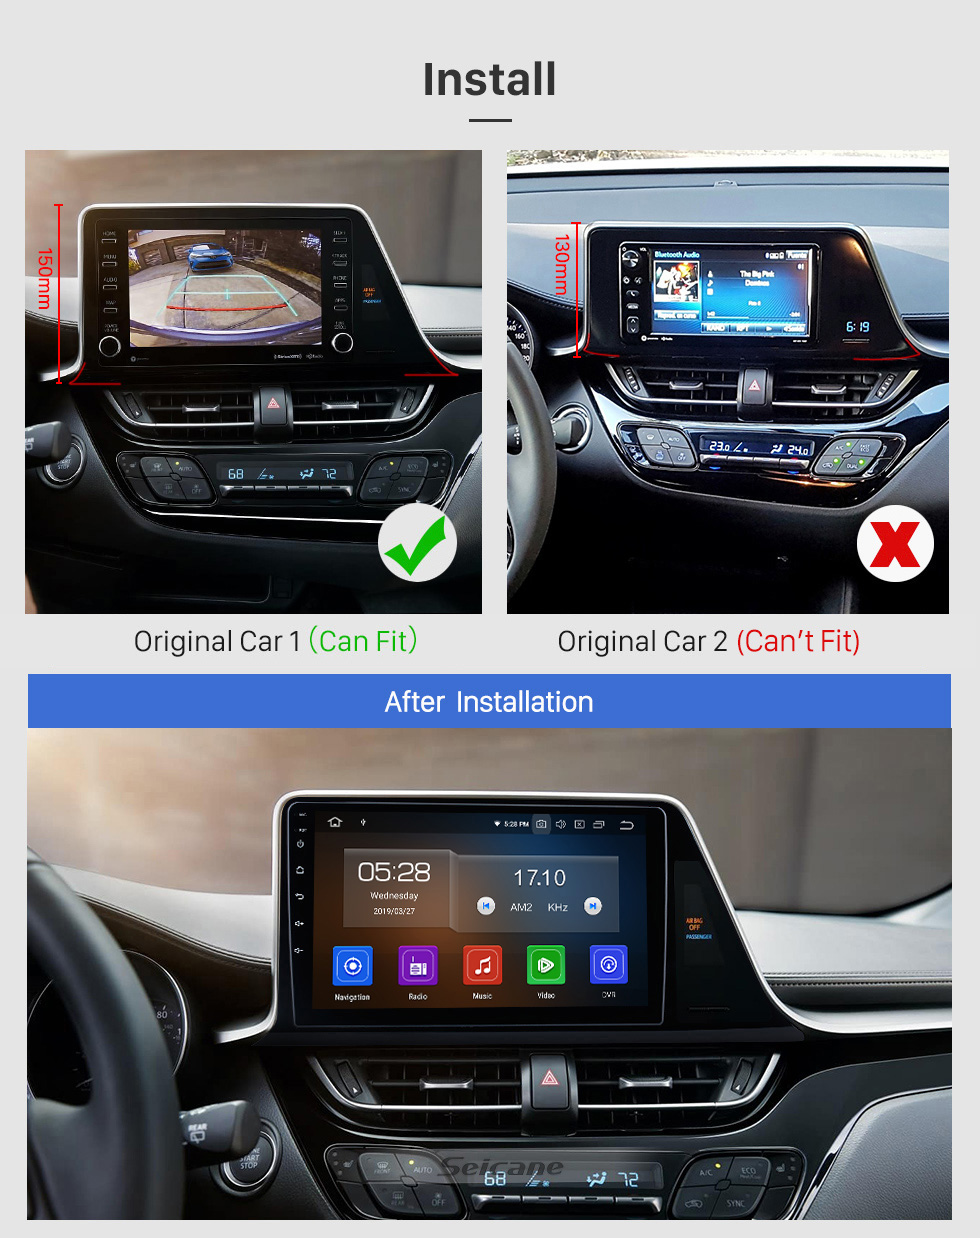 Seicane OEM HD Touchscreen 9 inch Android 10.0 Radio for 2016 2017 2018 Toyota C-HR GPS Navigation Head unit USB Bluetooth SWC support 4G WIFI DVR Digital TV 1080P Video Carplay